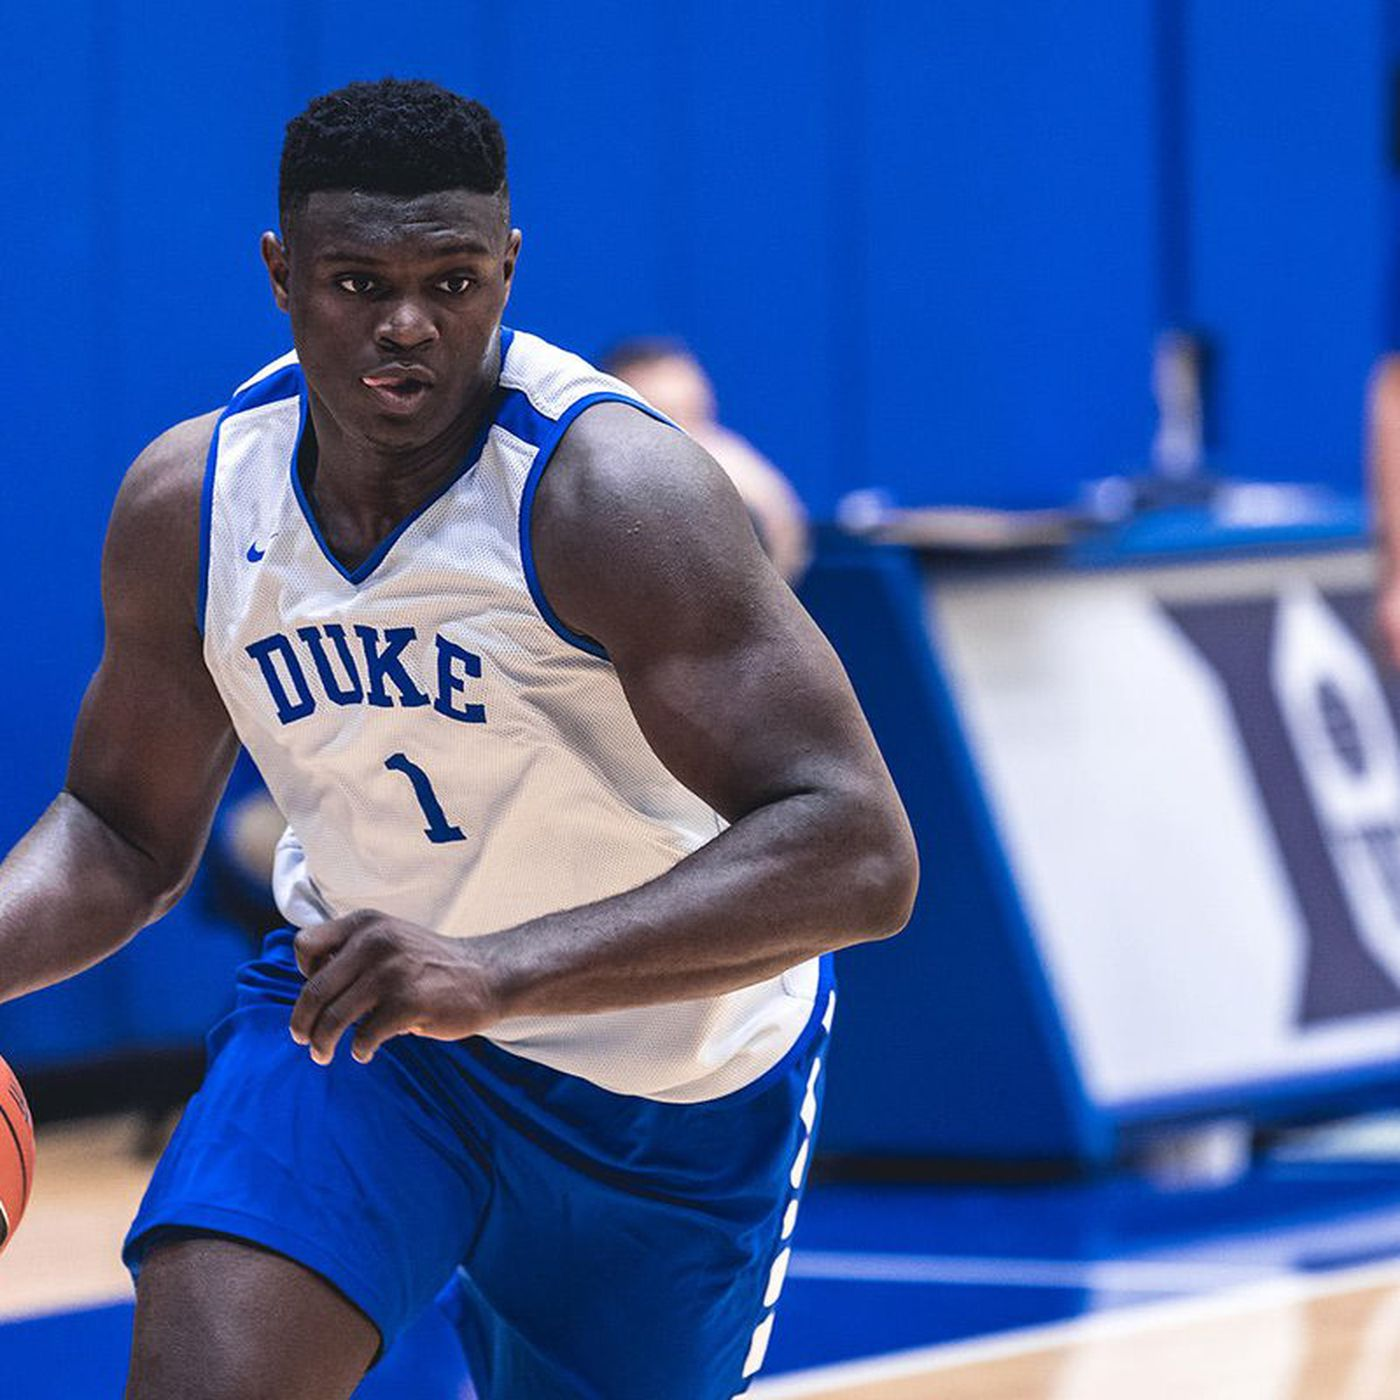 quality design 1f277 ccc1d Duke basketball's Zion Williamson is the 285-pound dunking ...